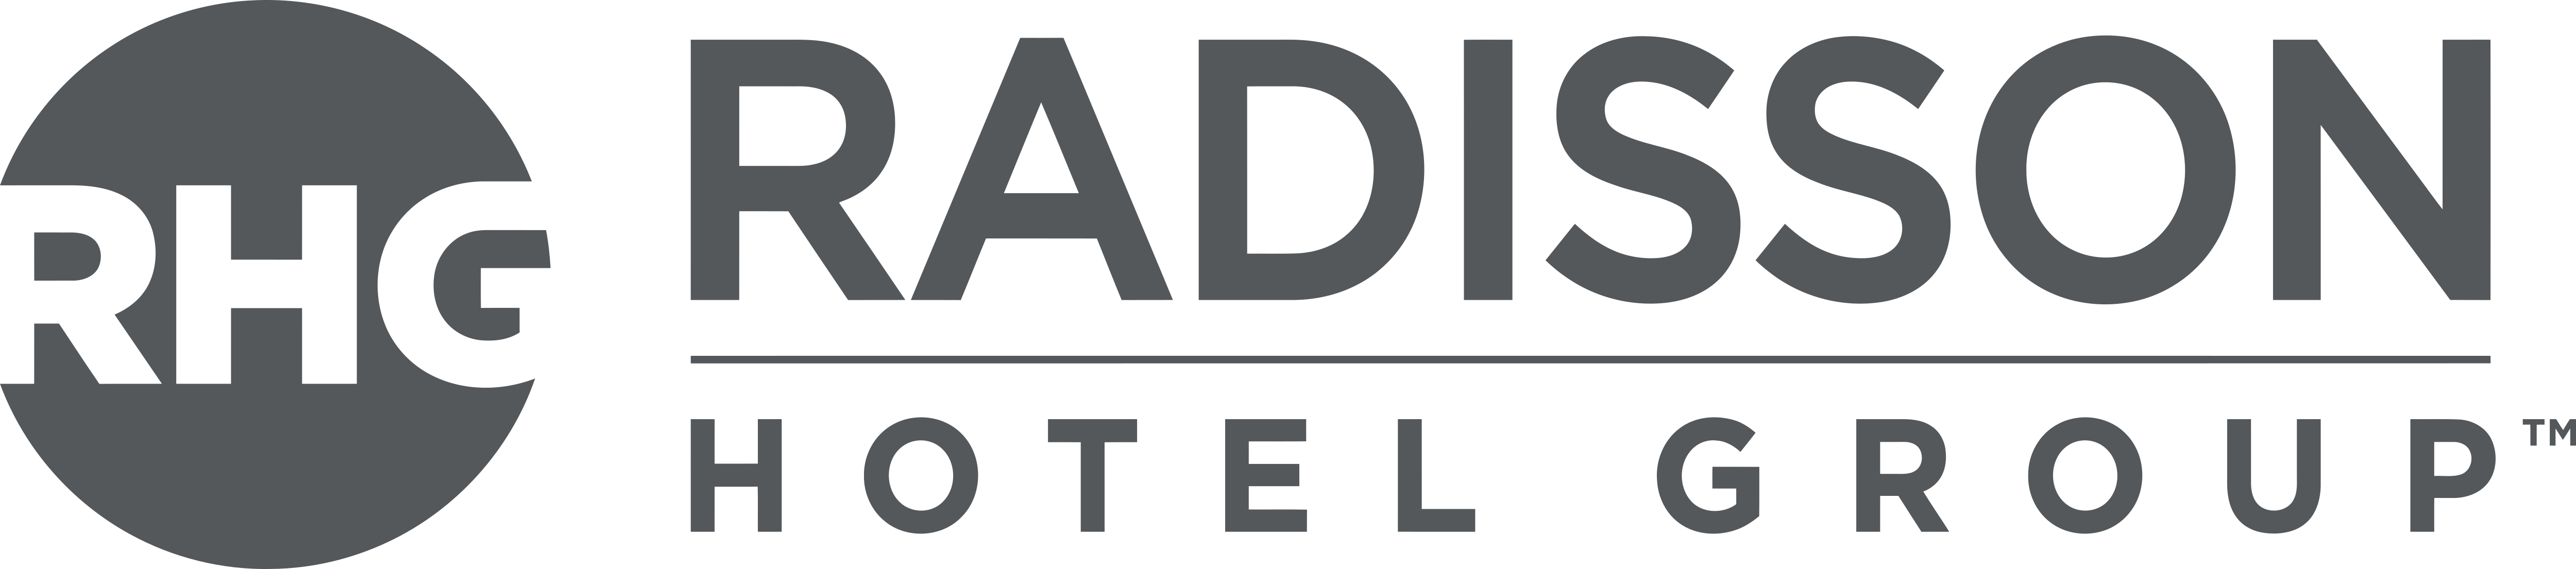 Radisson_Hotel_Group_Logo_horizontally